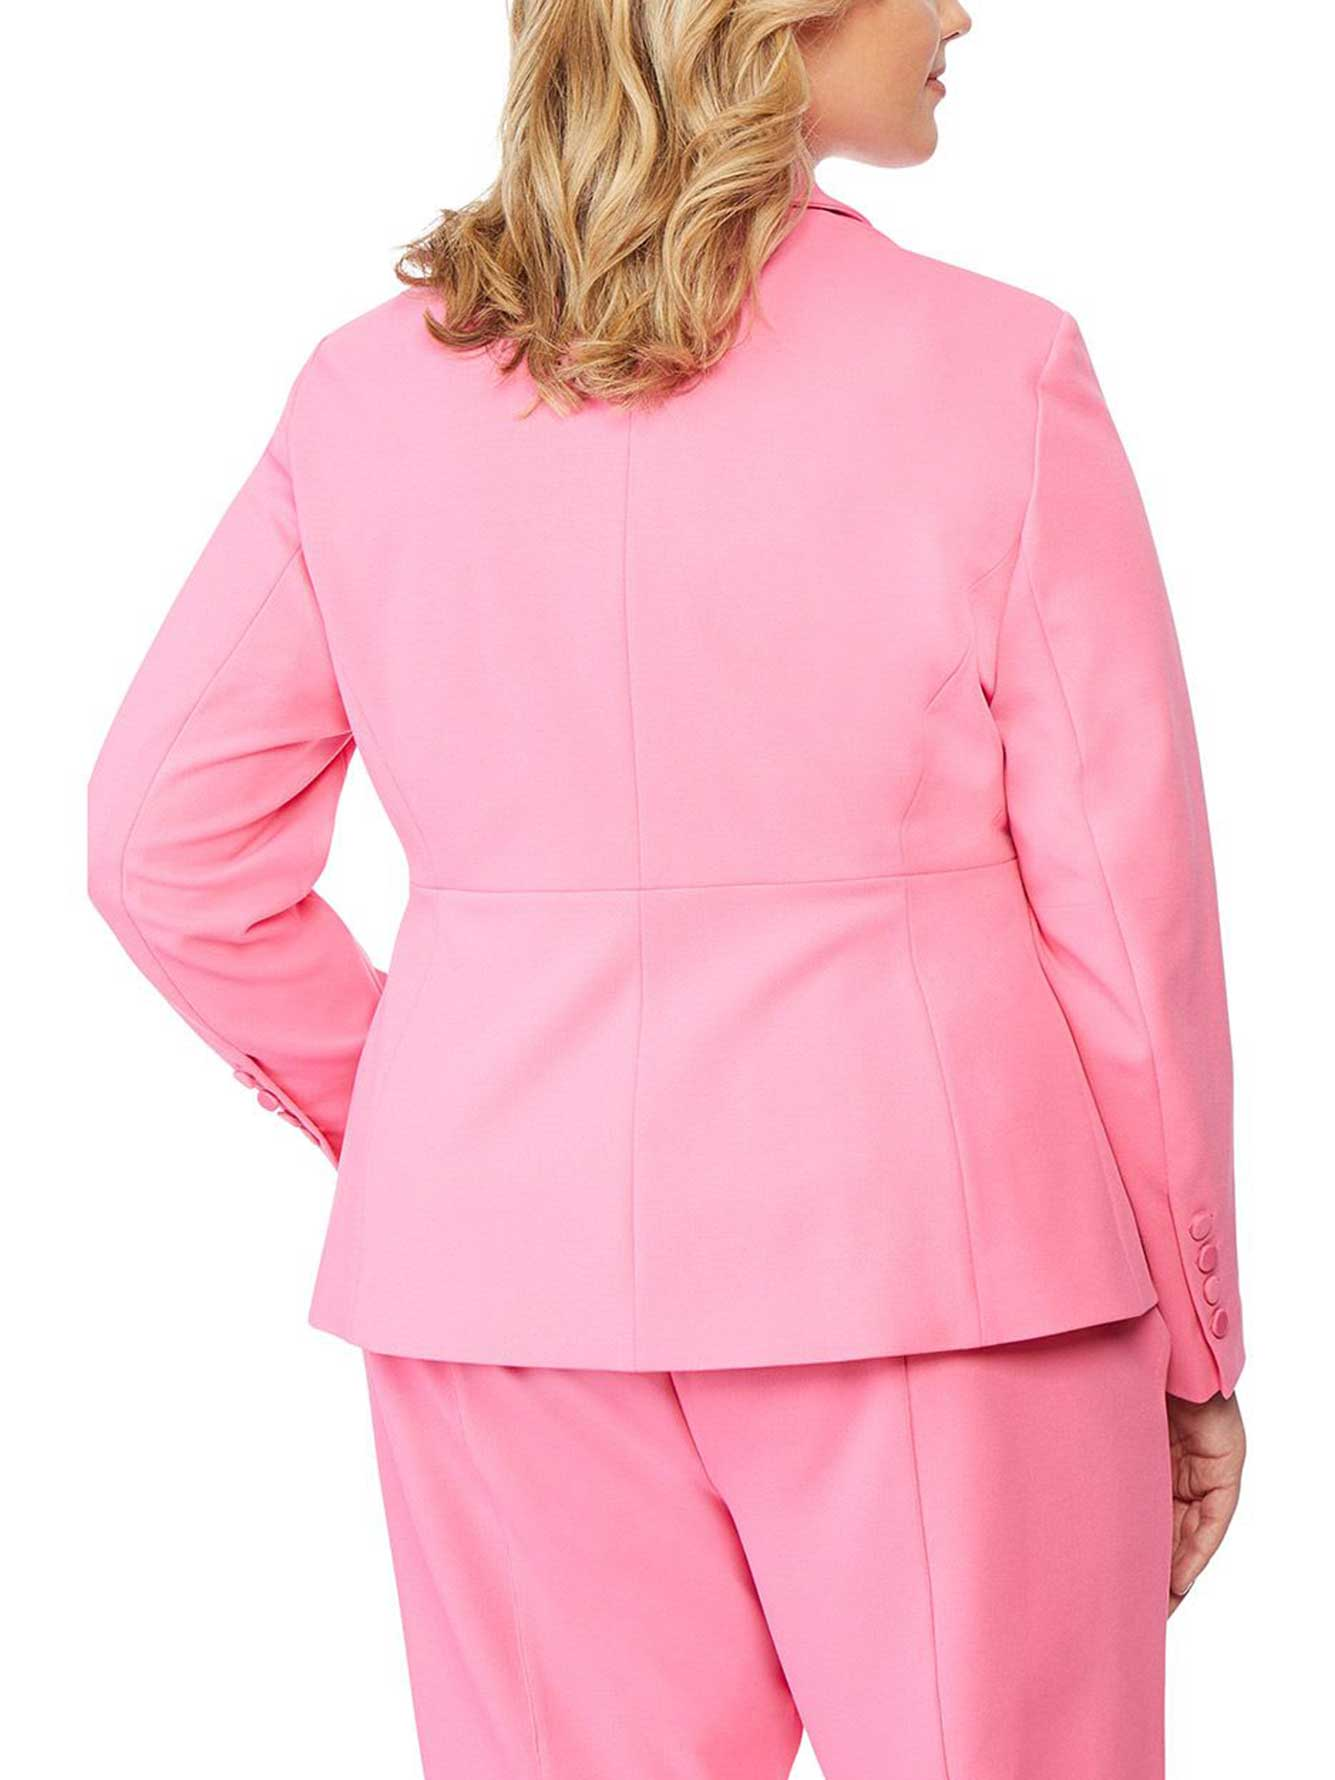 Peplum Blazer - Rebel Wilson X Angels